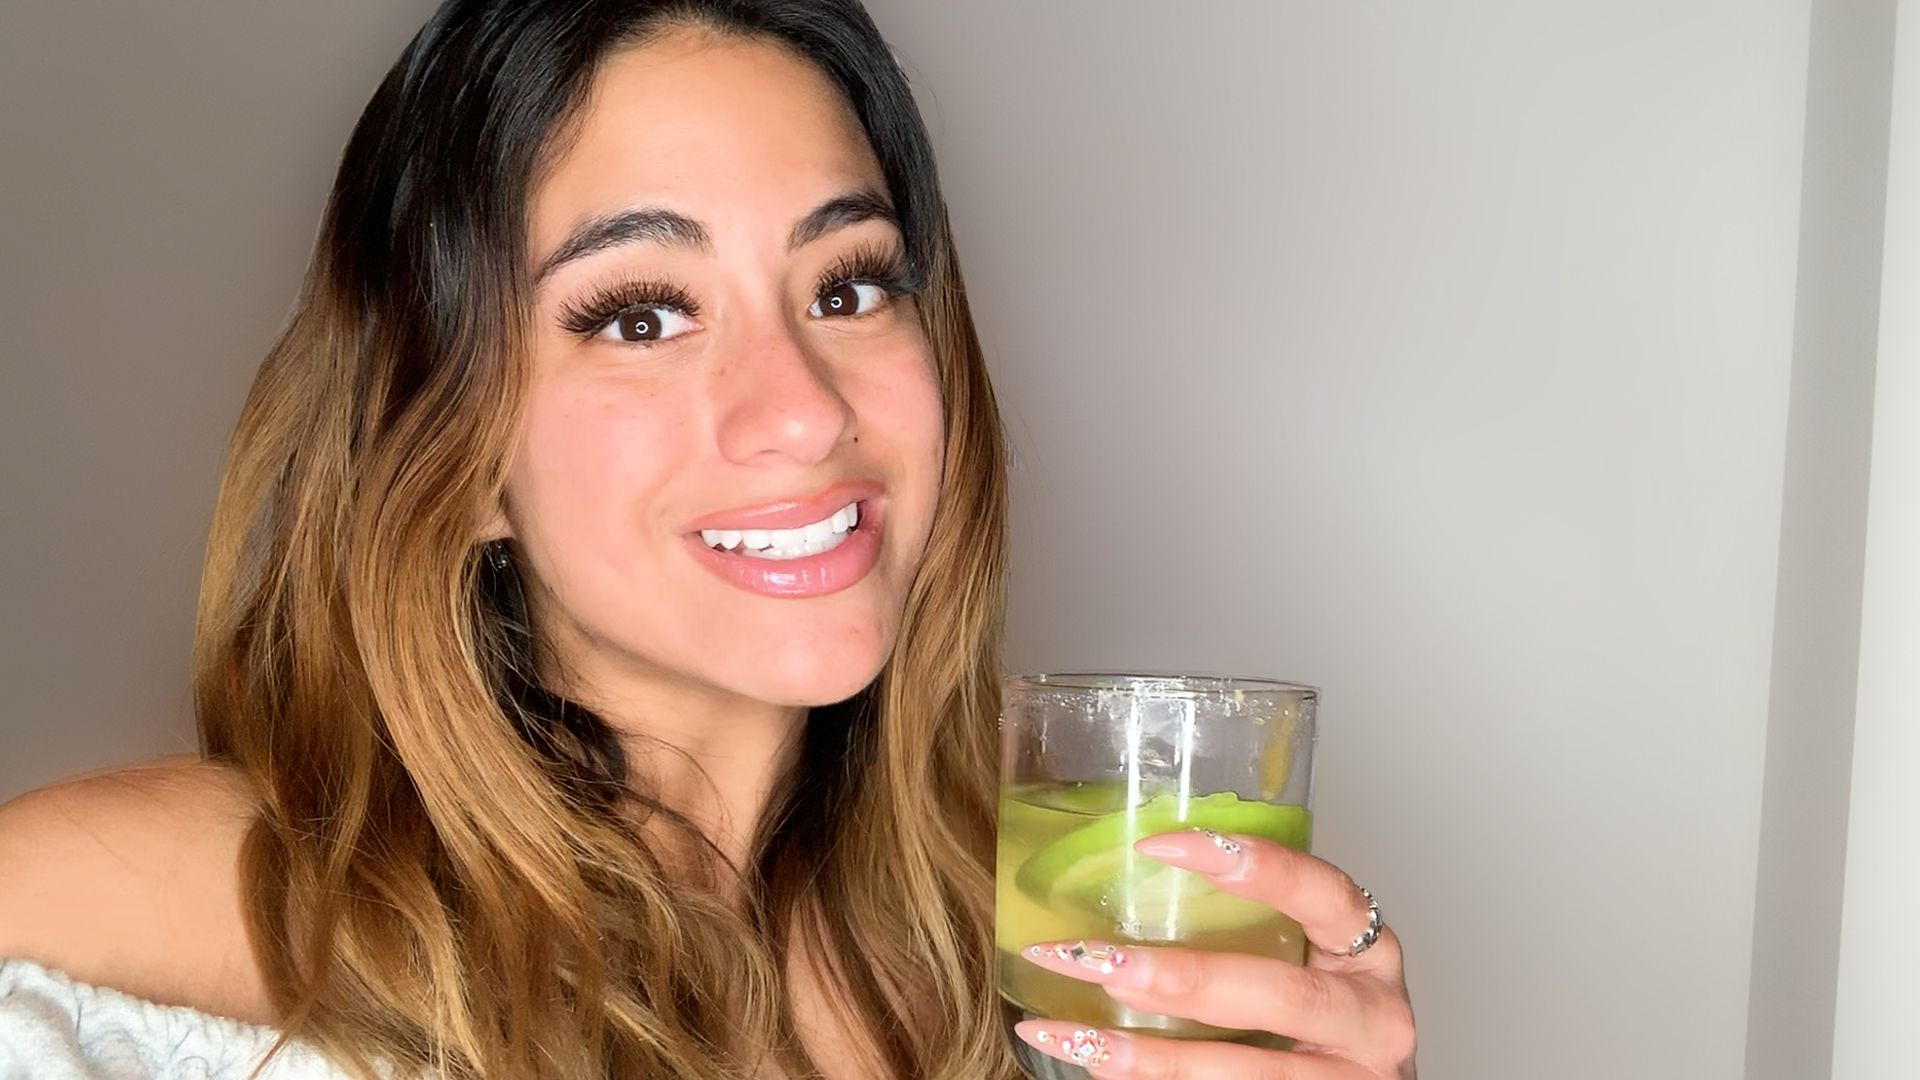 Ditch Your Basic Margarita for Ally Brooke's Apple and Tequila Concoction